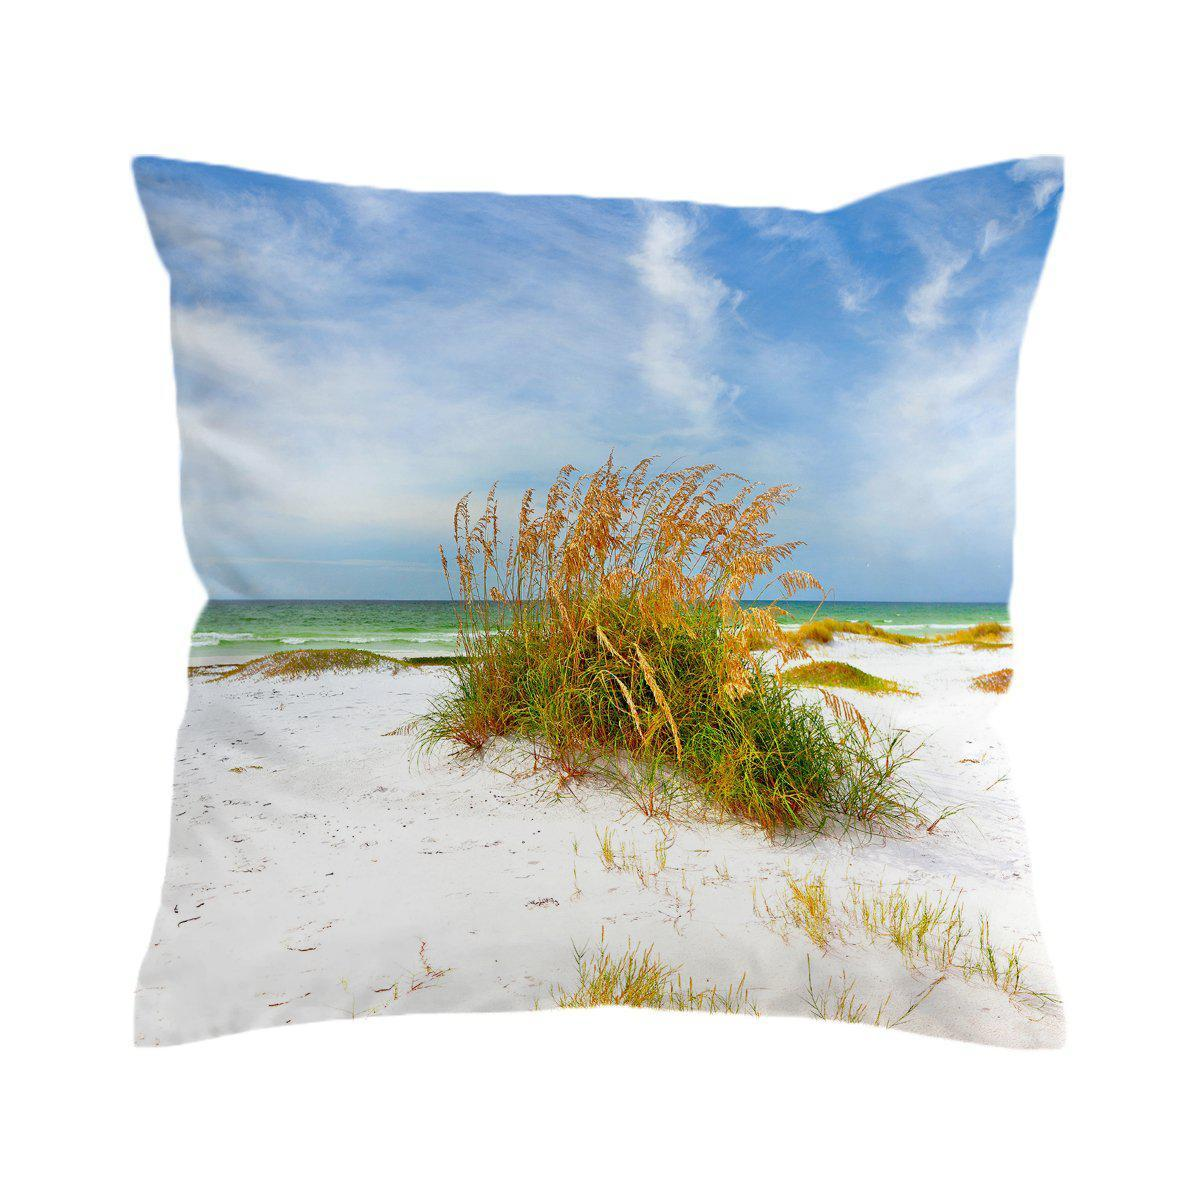 Florida Dreaming Pillow Cover